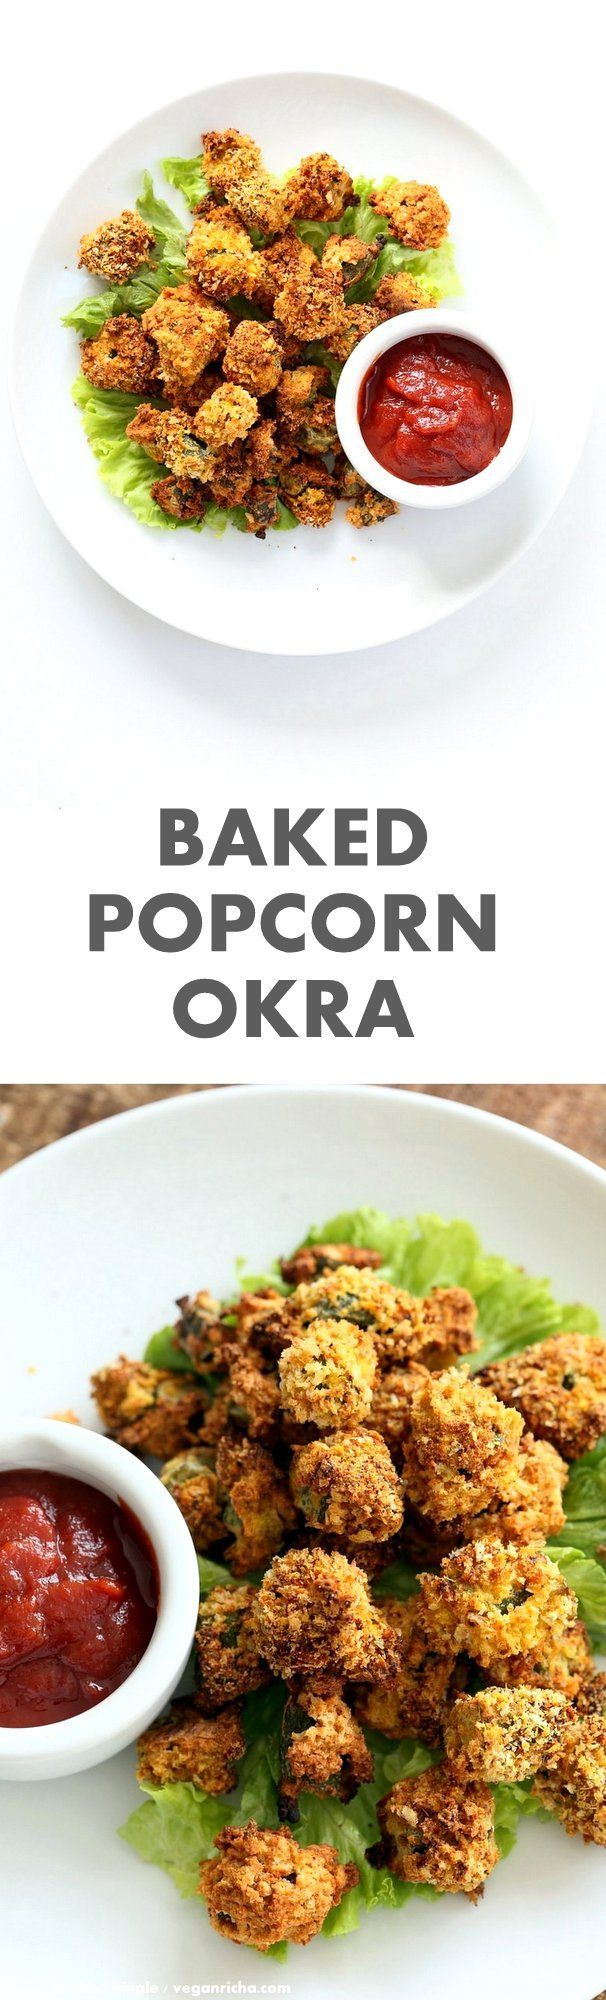 Baked Popcorn Okra. Okra / Bhindi coated in chickpea flour batter, tossed in spiced breadcrumbs and baked until crunchy crisp. #Vegan #Recipe, can be #glutenfree and #oilfree. | VeganRicha.com